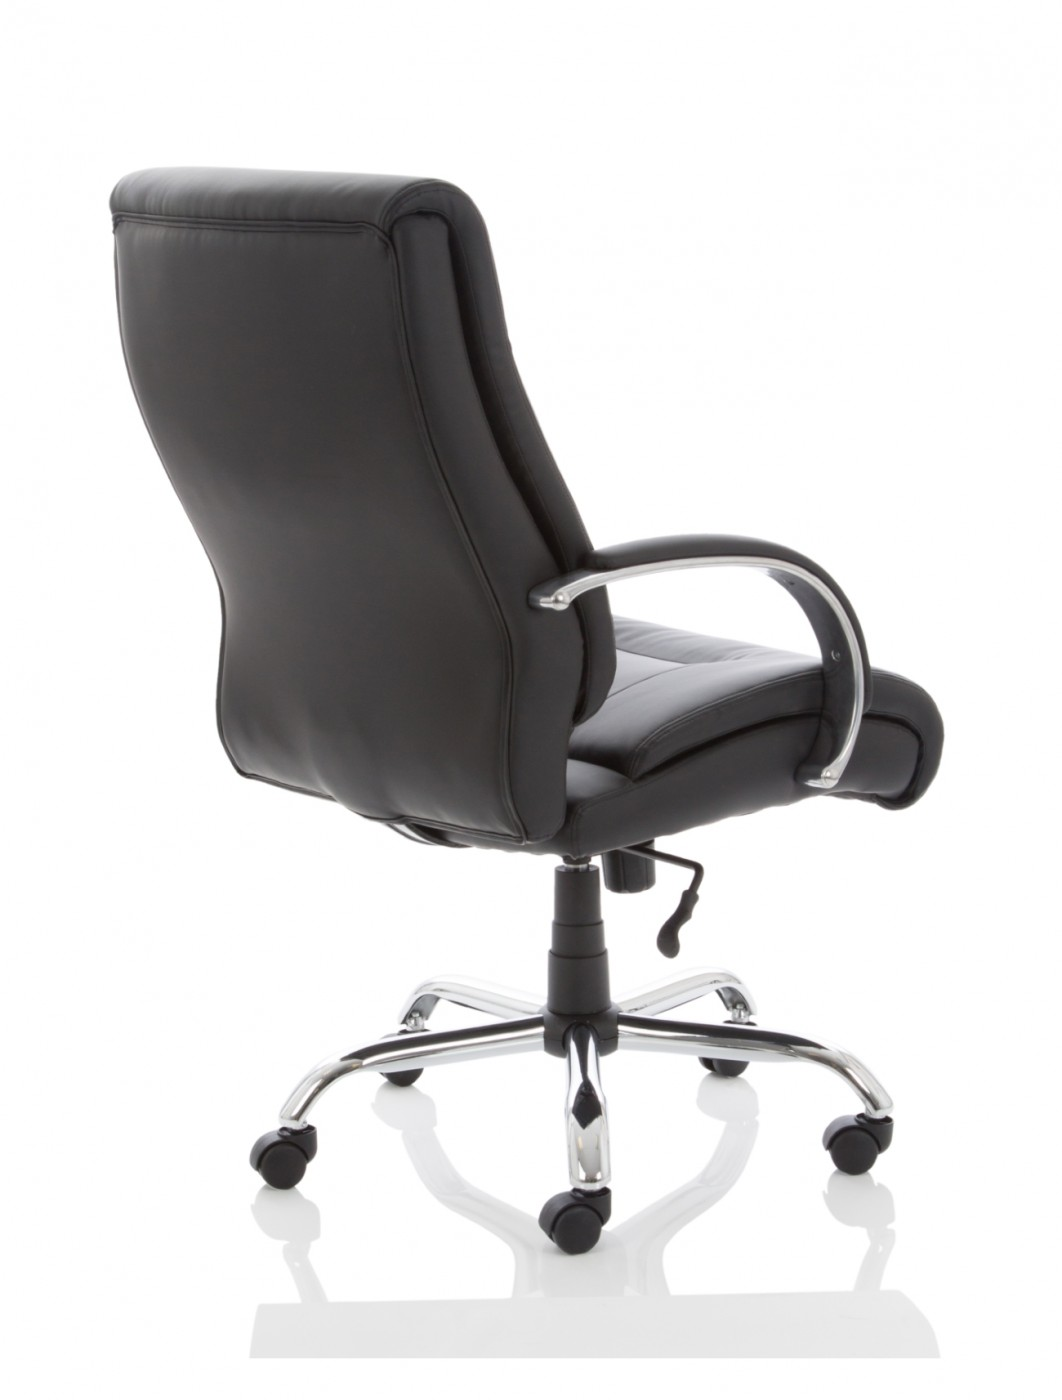 chair photo frame hd contemporary leather dining chairs office drayton super heavy duty executive